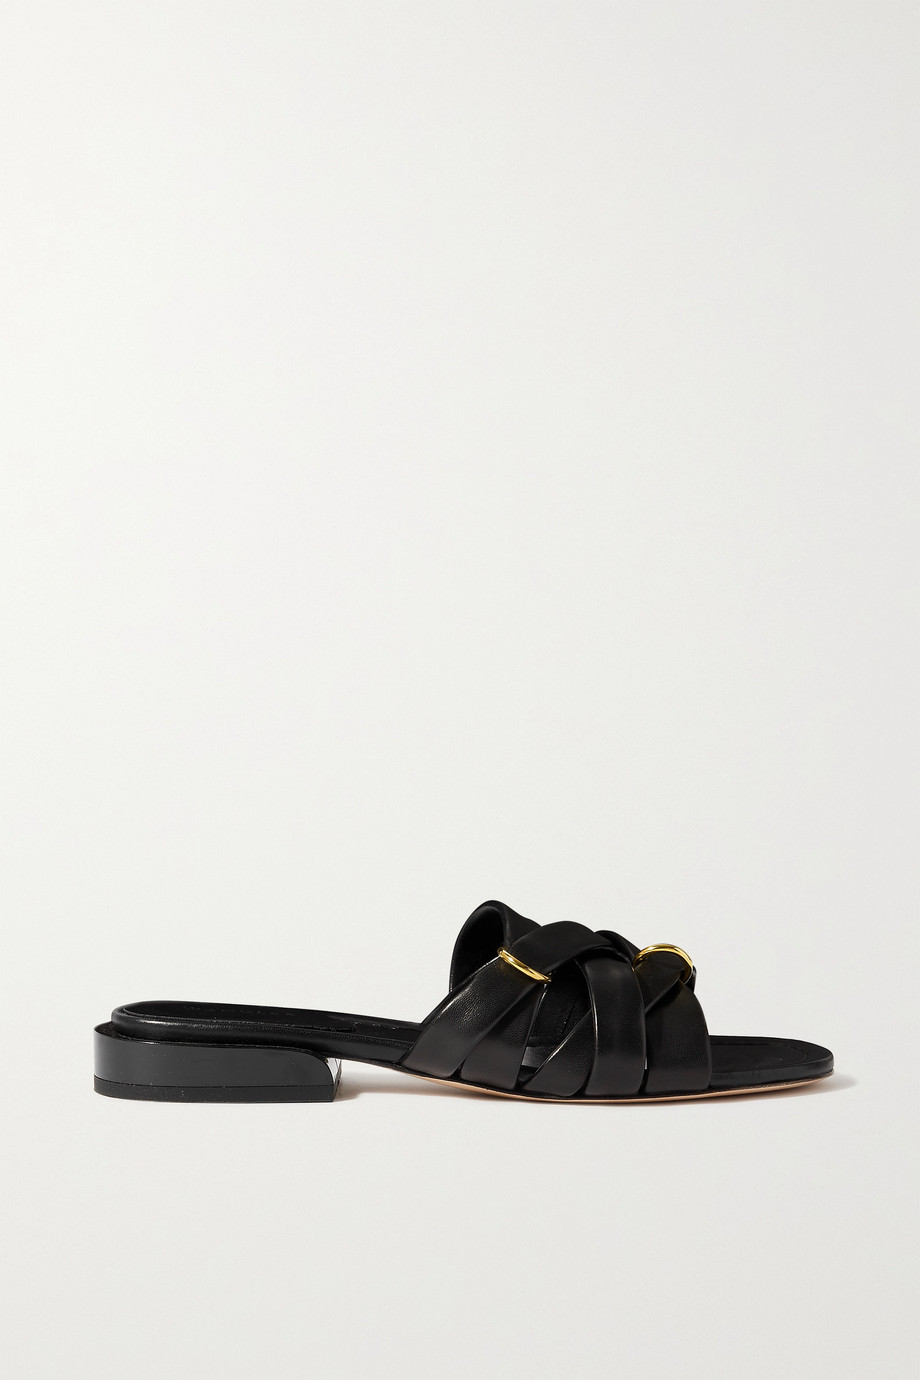 WANDLER Lara buckled woven leather slides